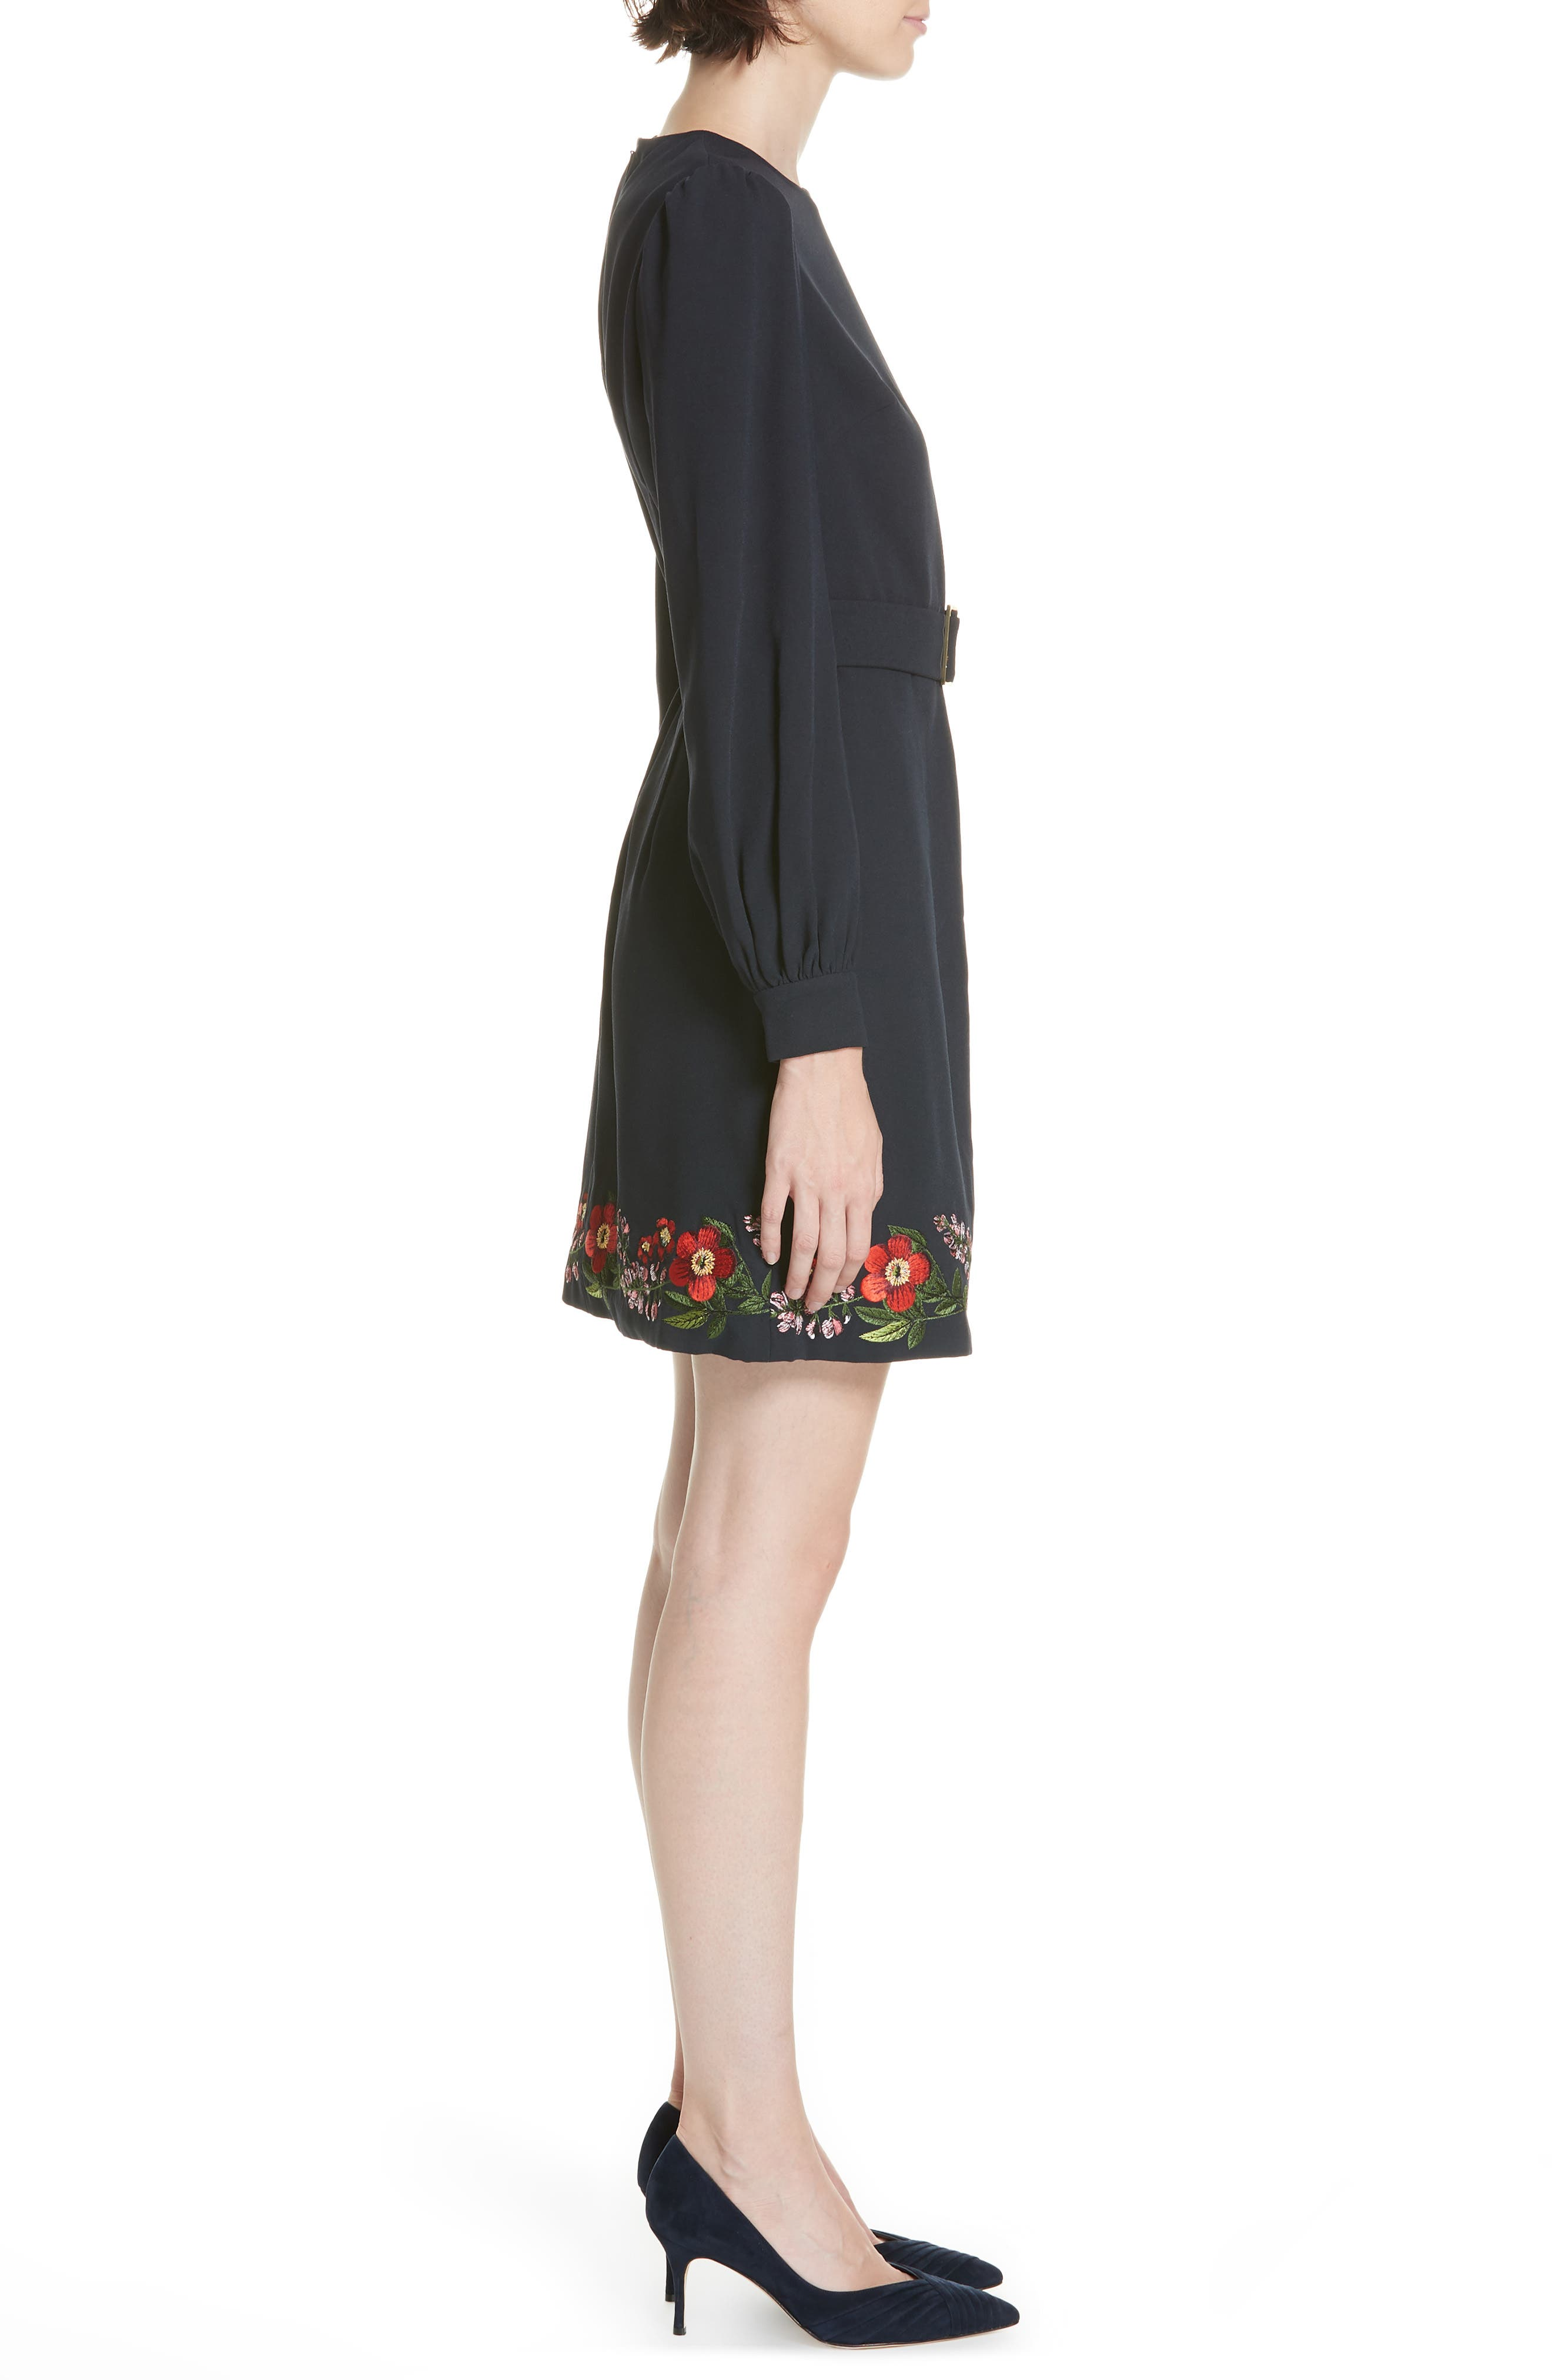 Silia Kirstenbosch Embroidered Dress,                             Alternate thumbnail 3, color,                             DARK BLUE